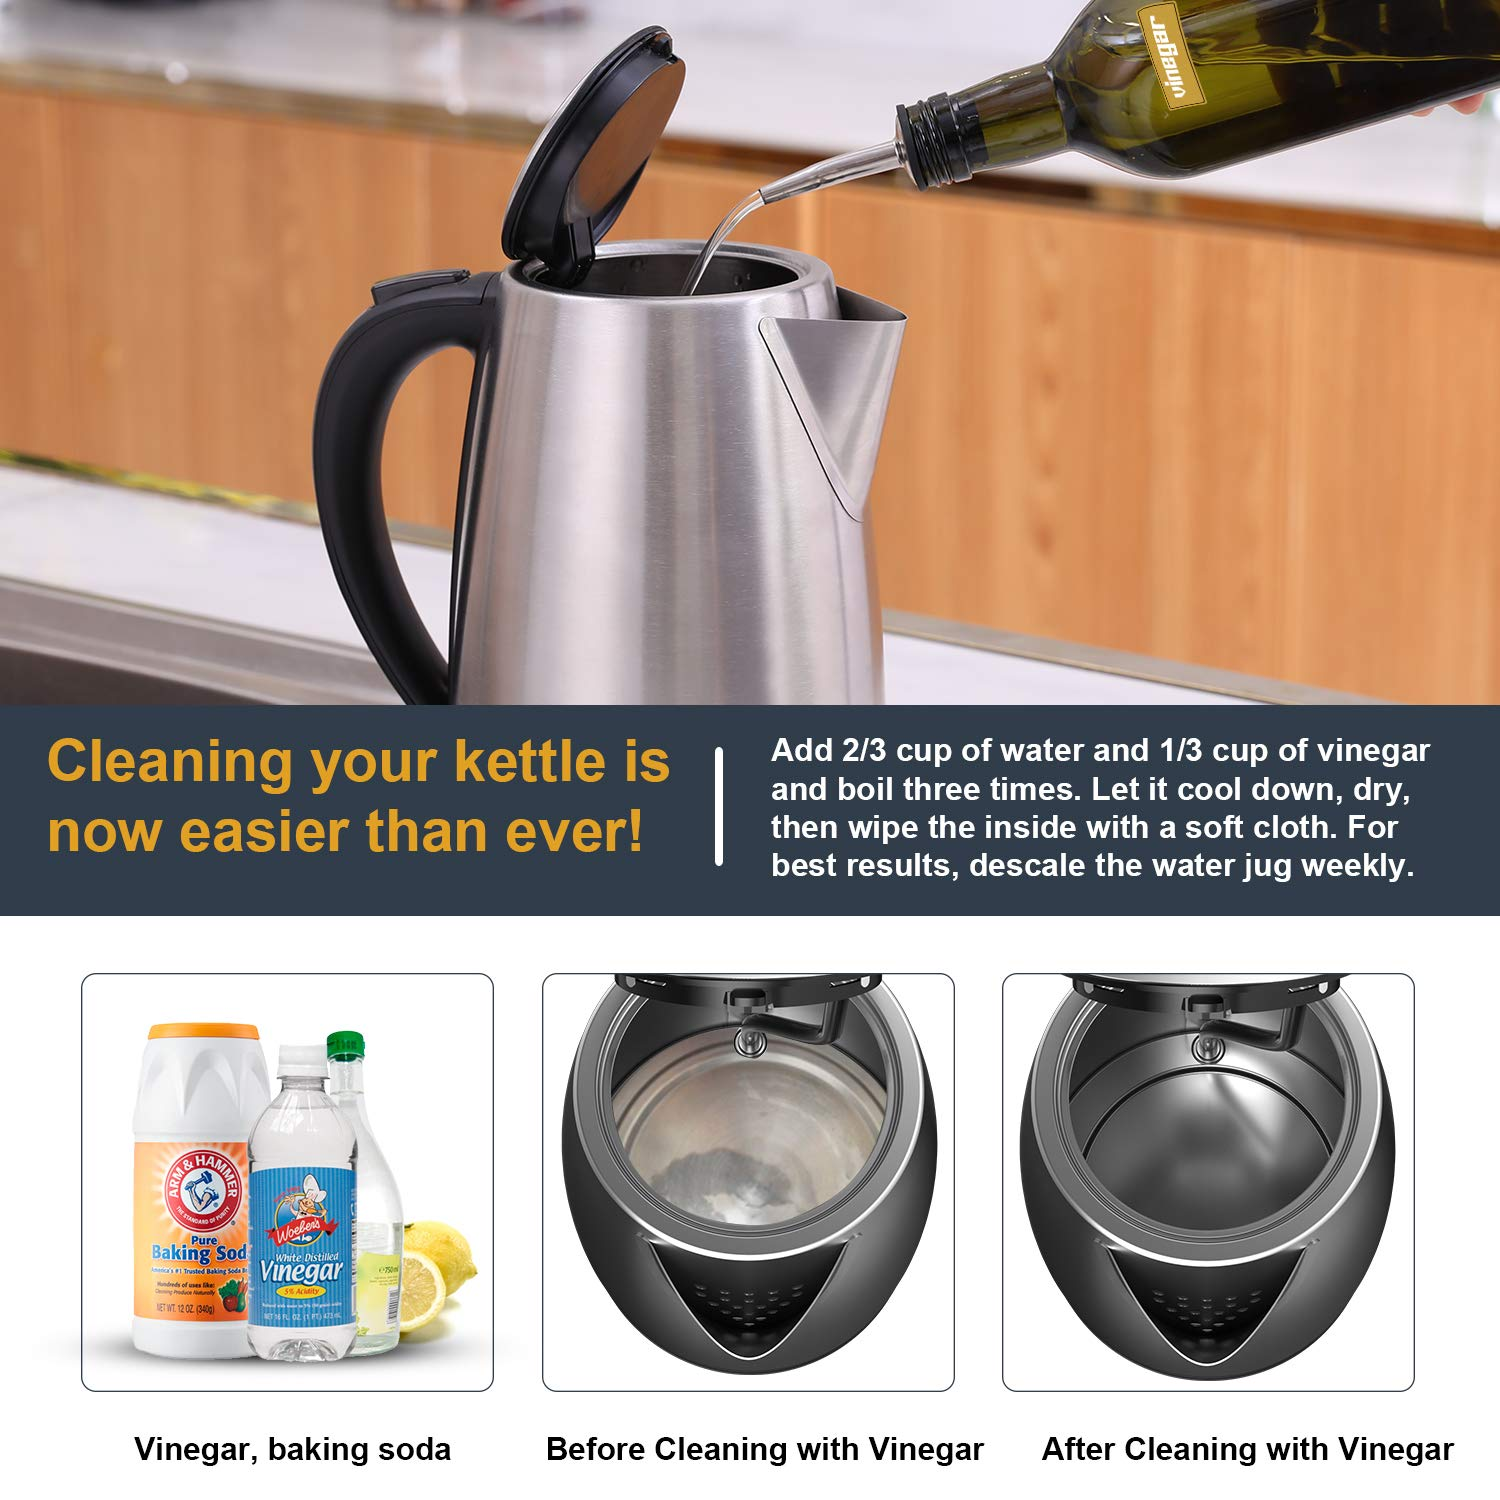 Electric Kettle - 1.7 Liter 304 Stainless Steel Hot Water kettle - Coffee Pot & Tea Kettle - Auto Shutoff and Boil Dry Protection, Cordless, FDA/FCC Approved by Weftnom (Image #7)